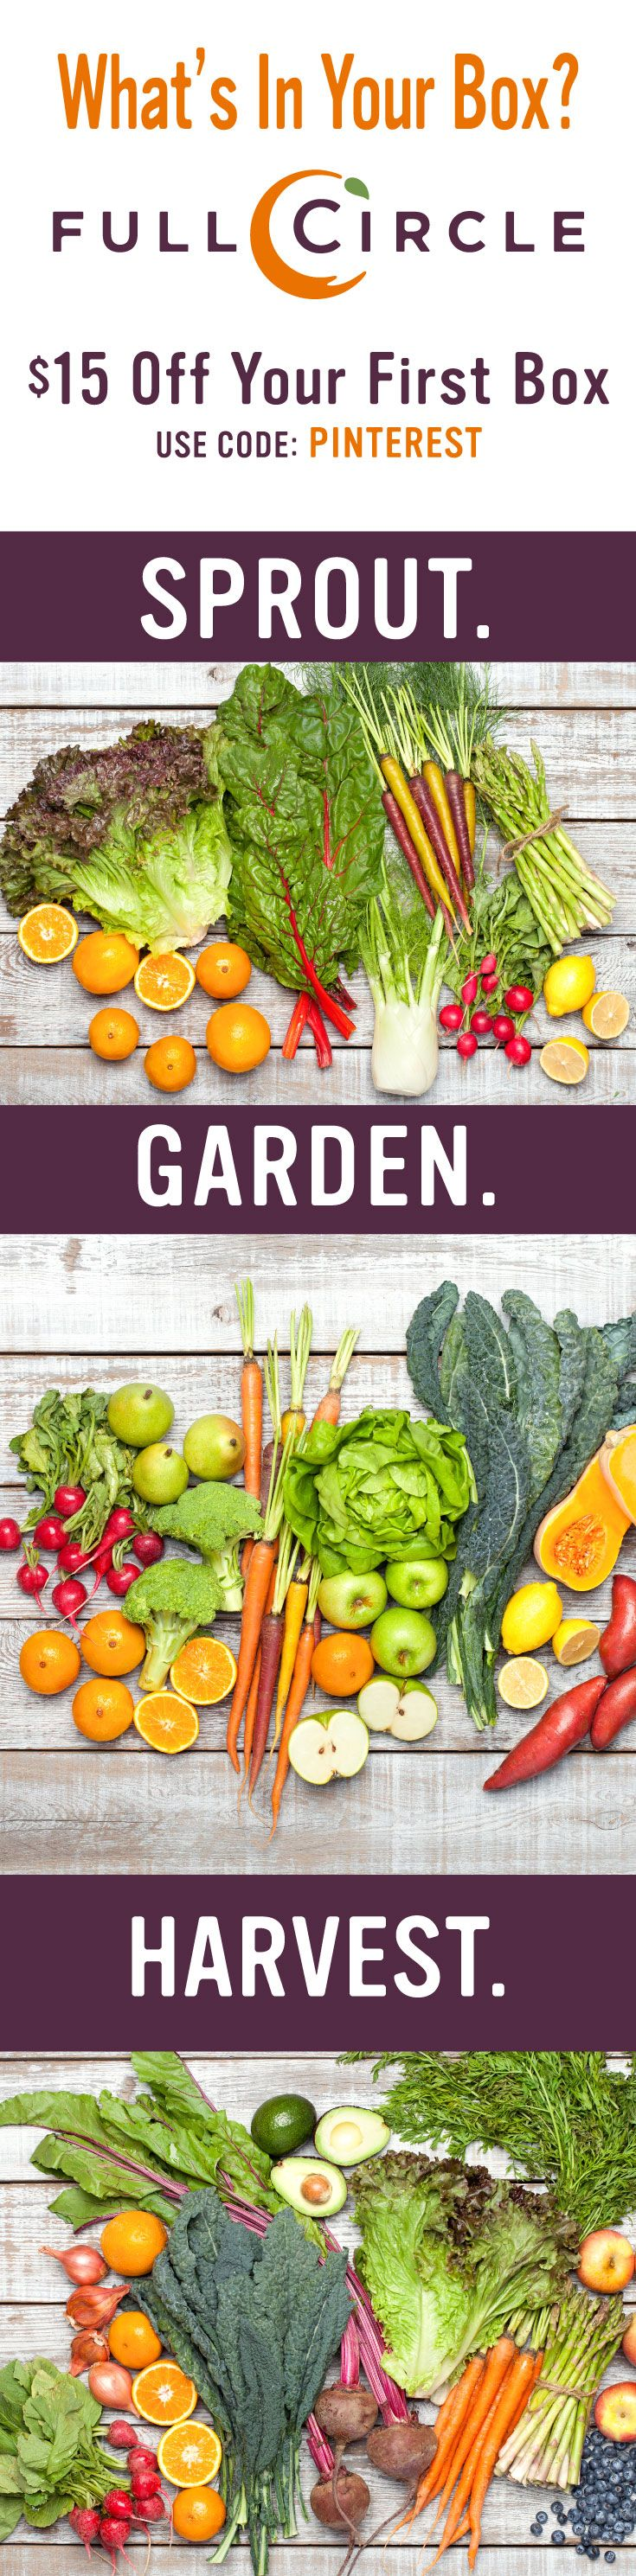 Full Circle provides Certified Organic fruits and vegetables right to your doorstep.